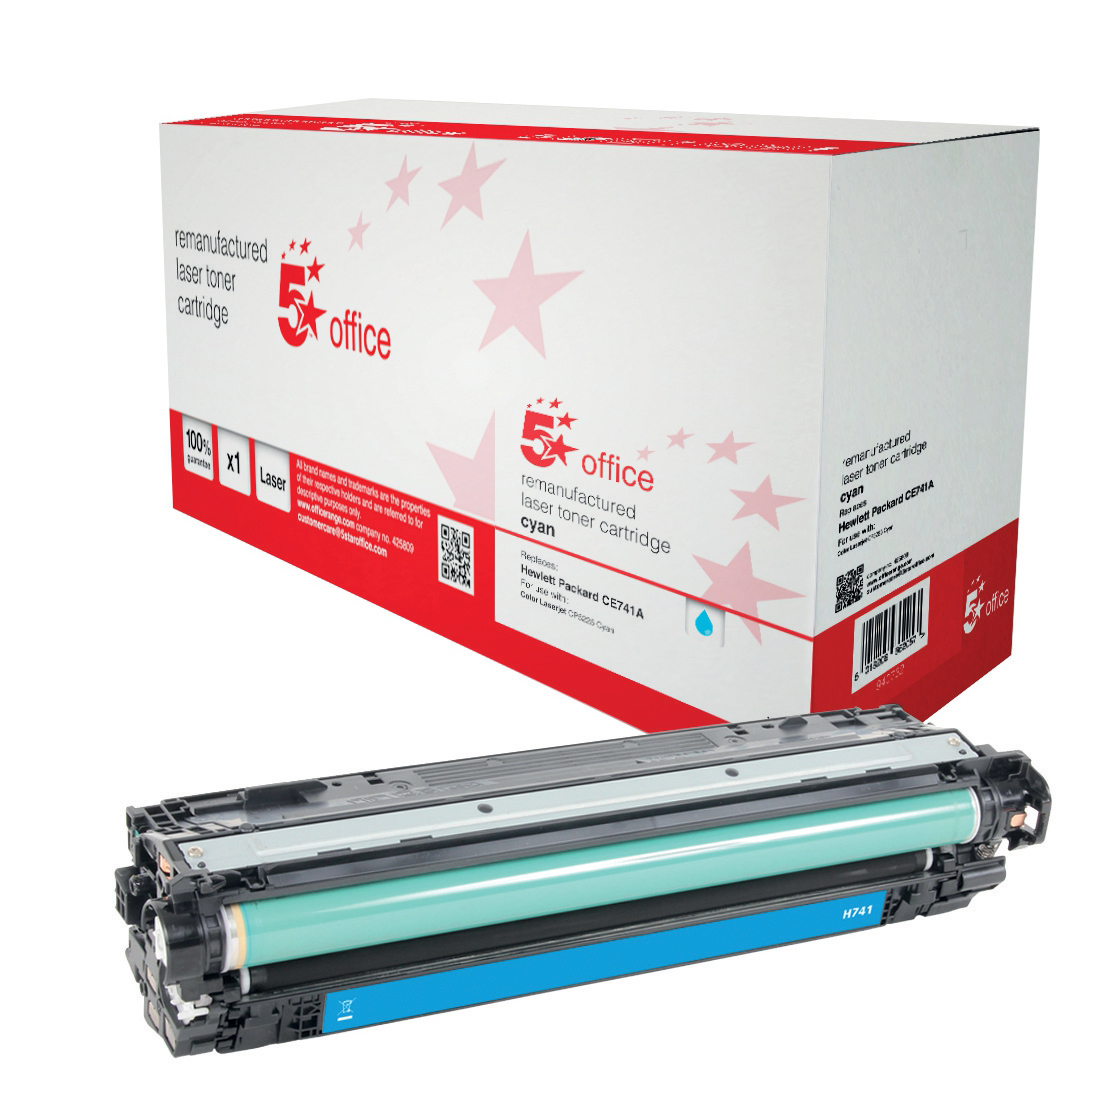 5 Star Office Remanufactured Laser Toner Cartridge Page Life 7300pp Cyan [HP 307A CE741A Alternative]